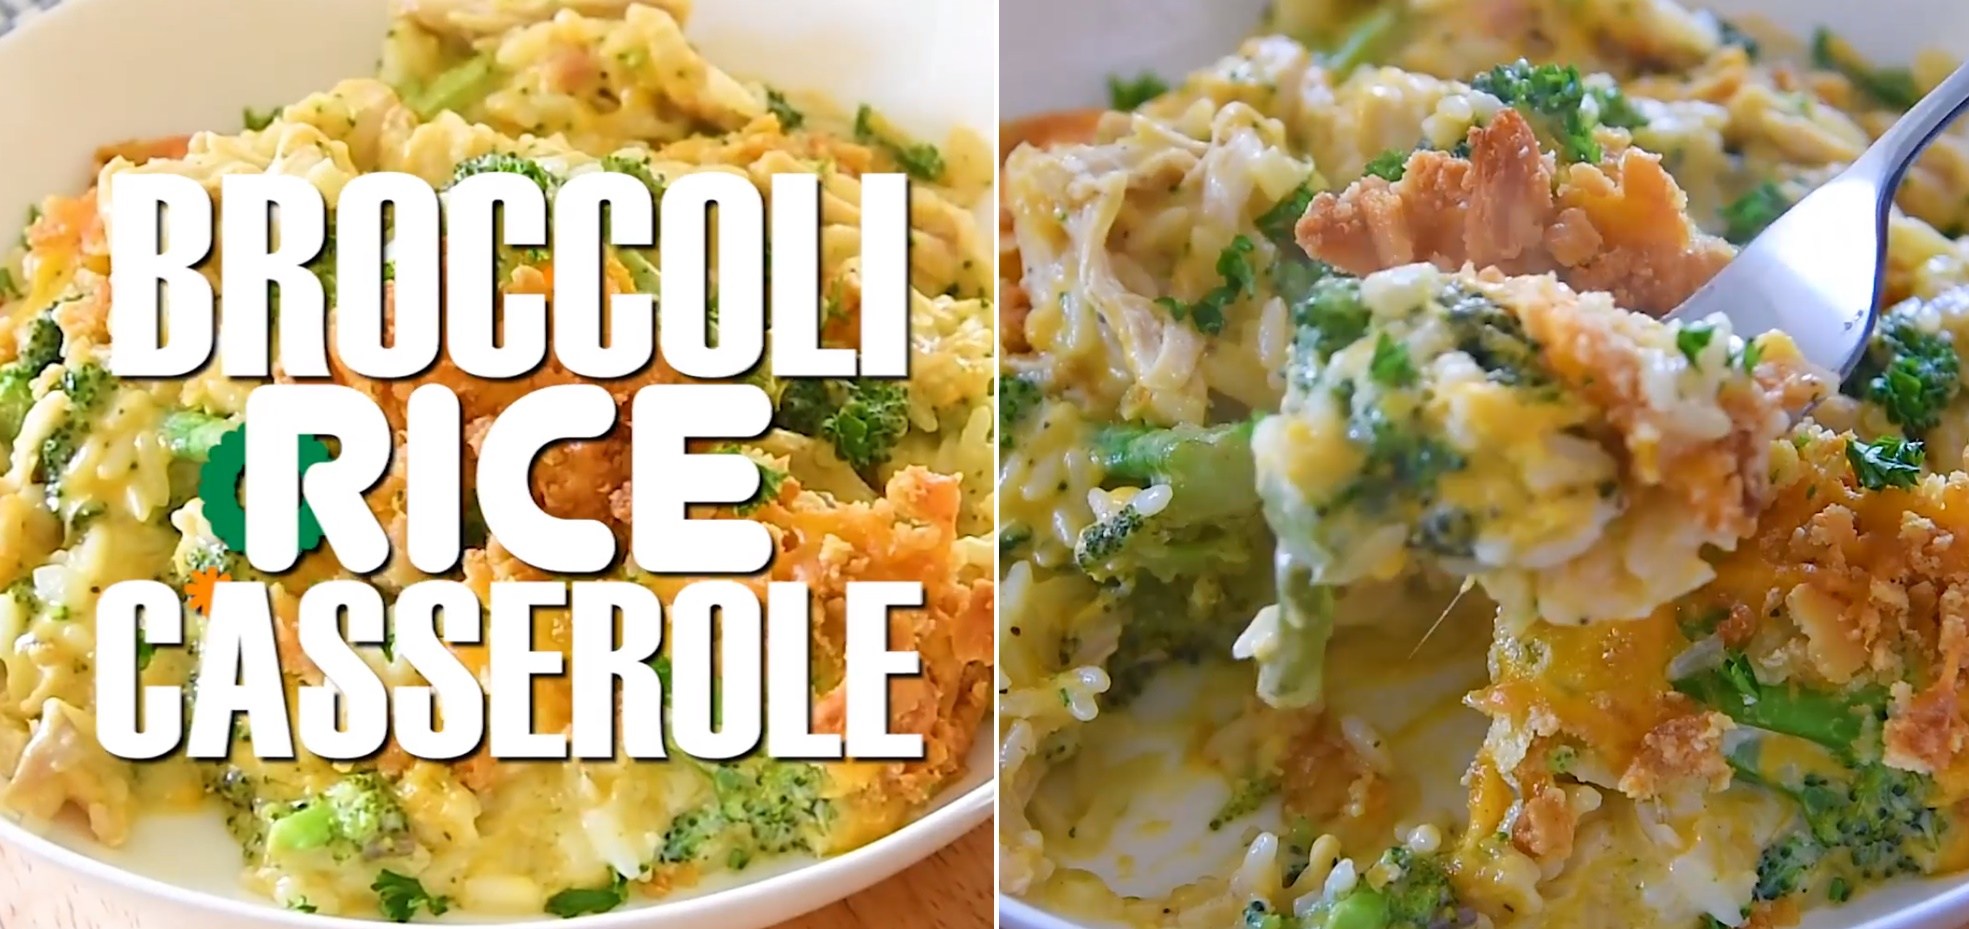 Easy Broccoli Rice Casserole with Turkey or Chicken